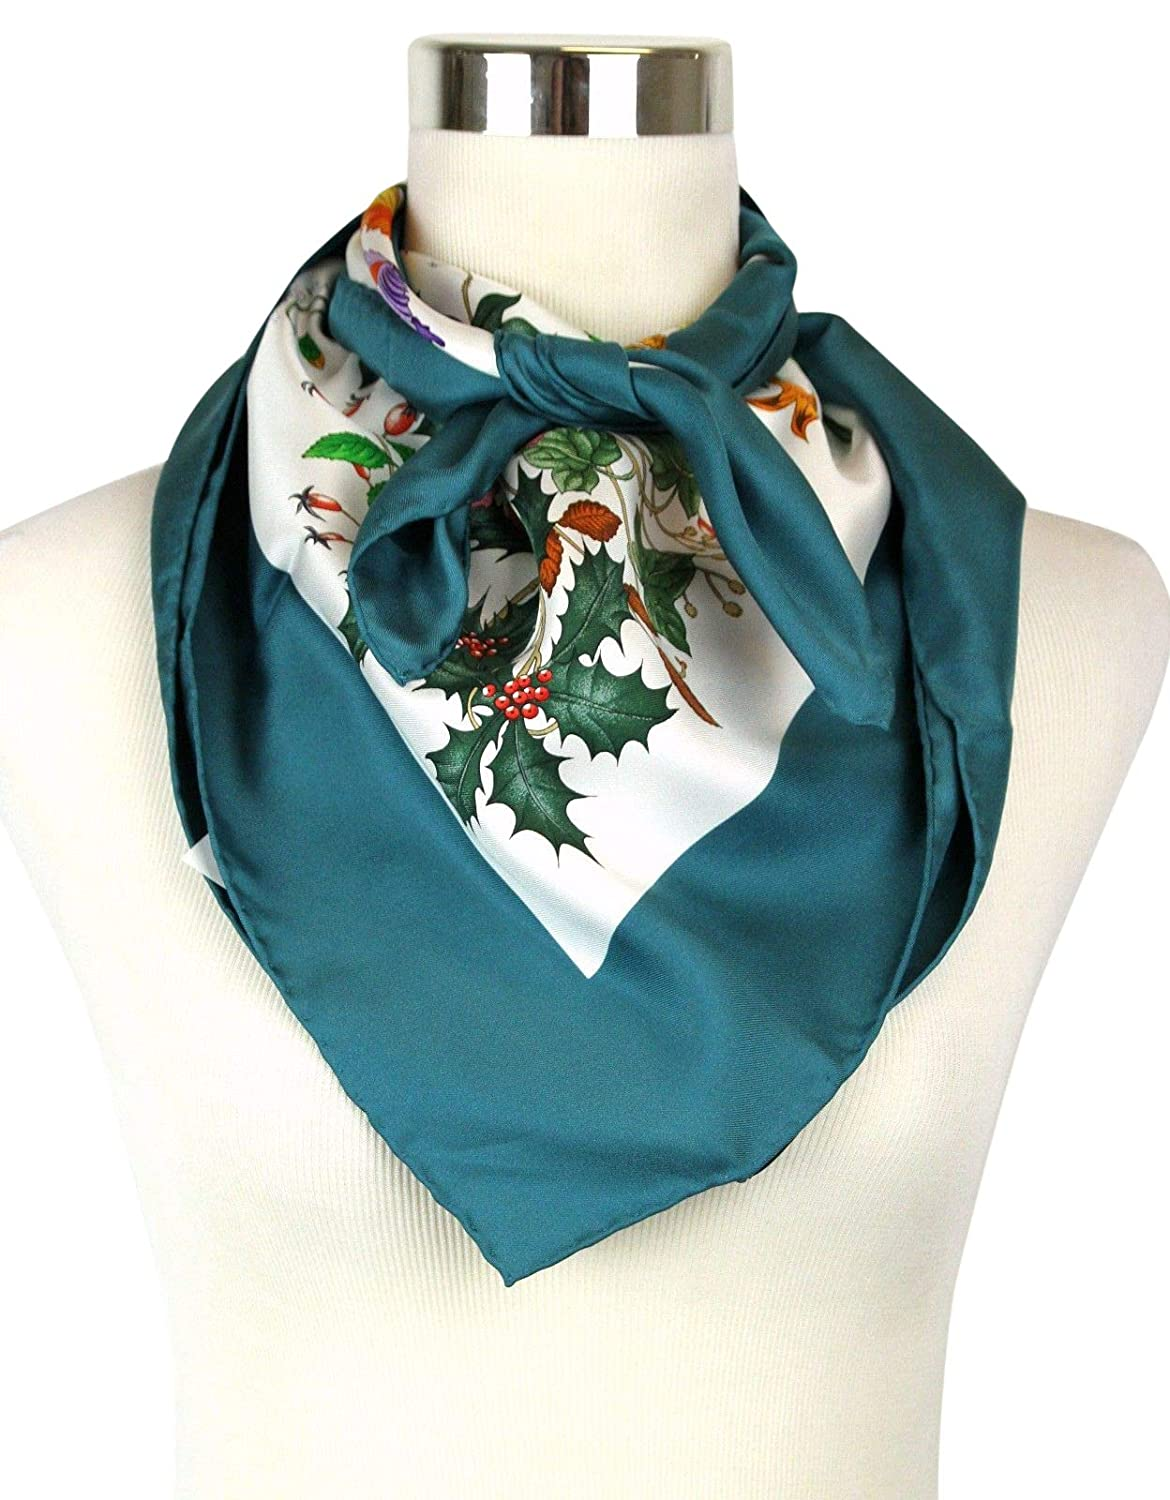 e6963f7caa Gucci Women's Floral Scarf Green Large Silk Scarf With Trim 022796 ...